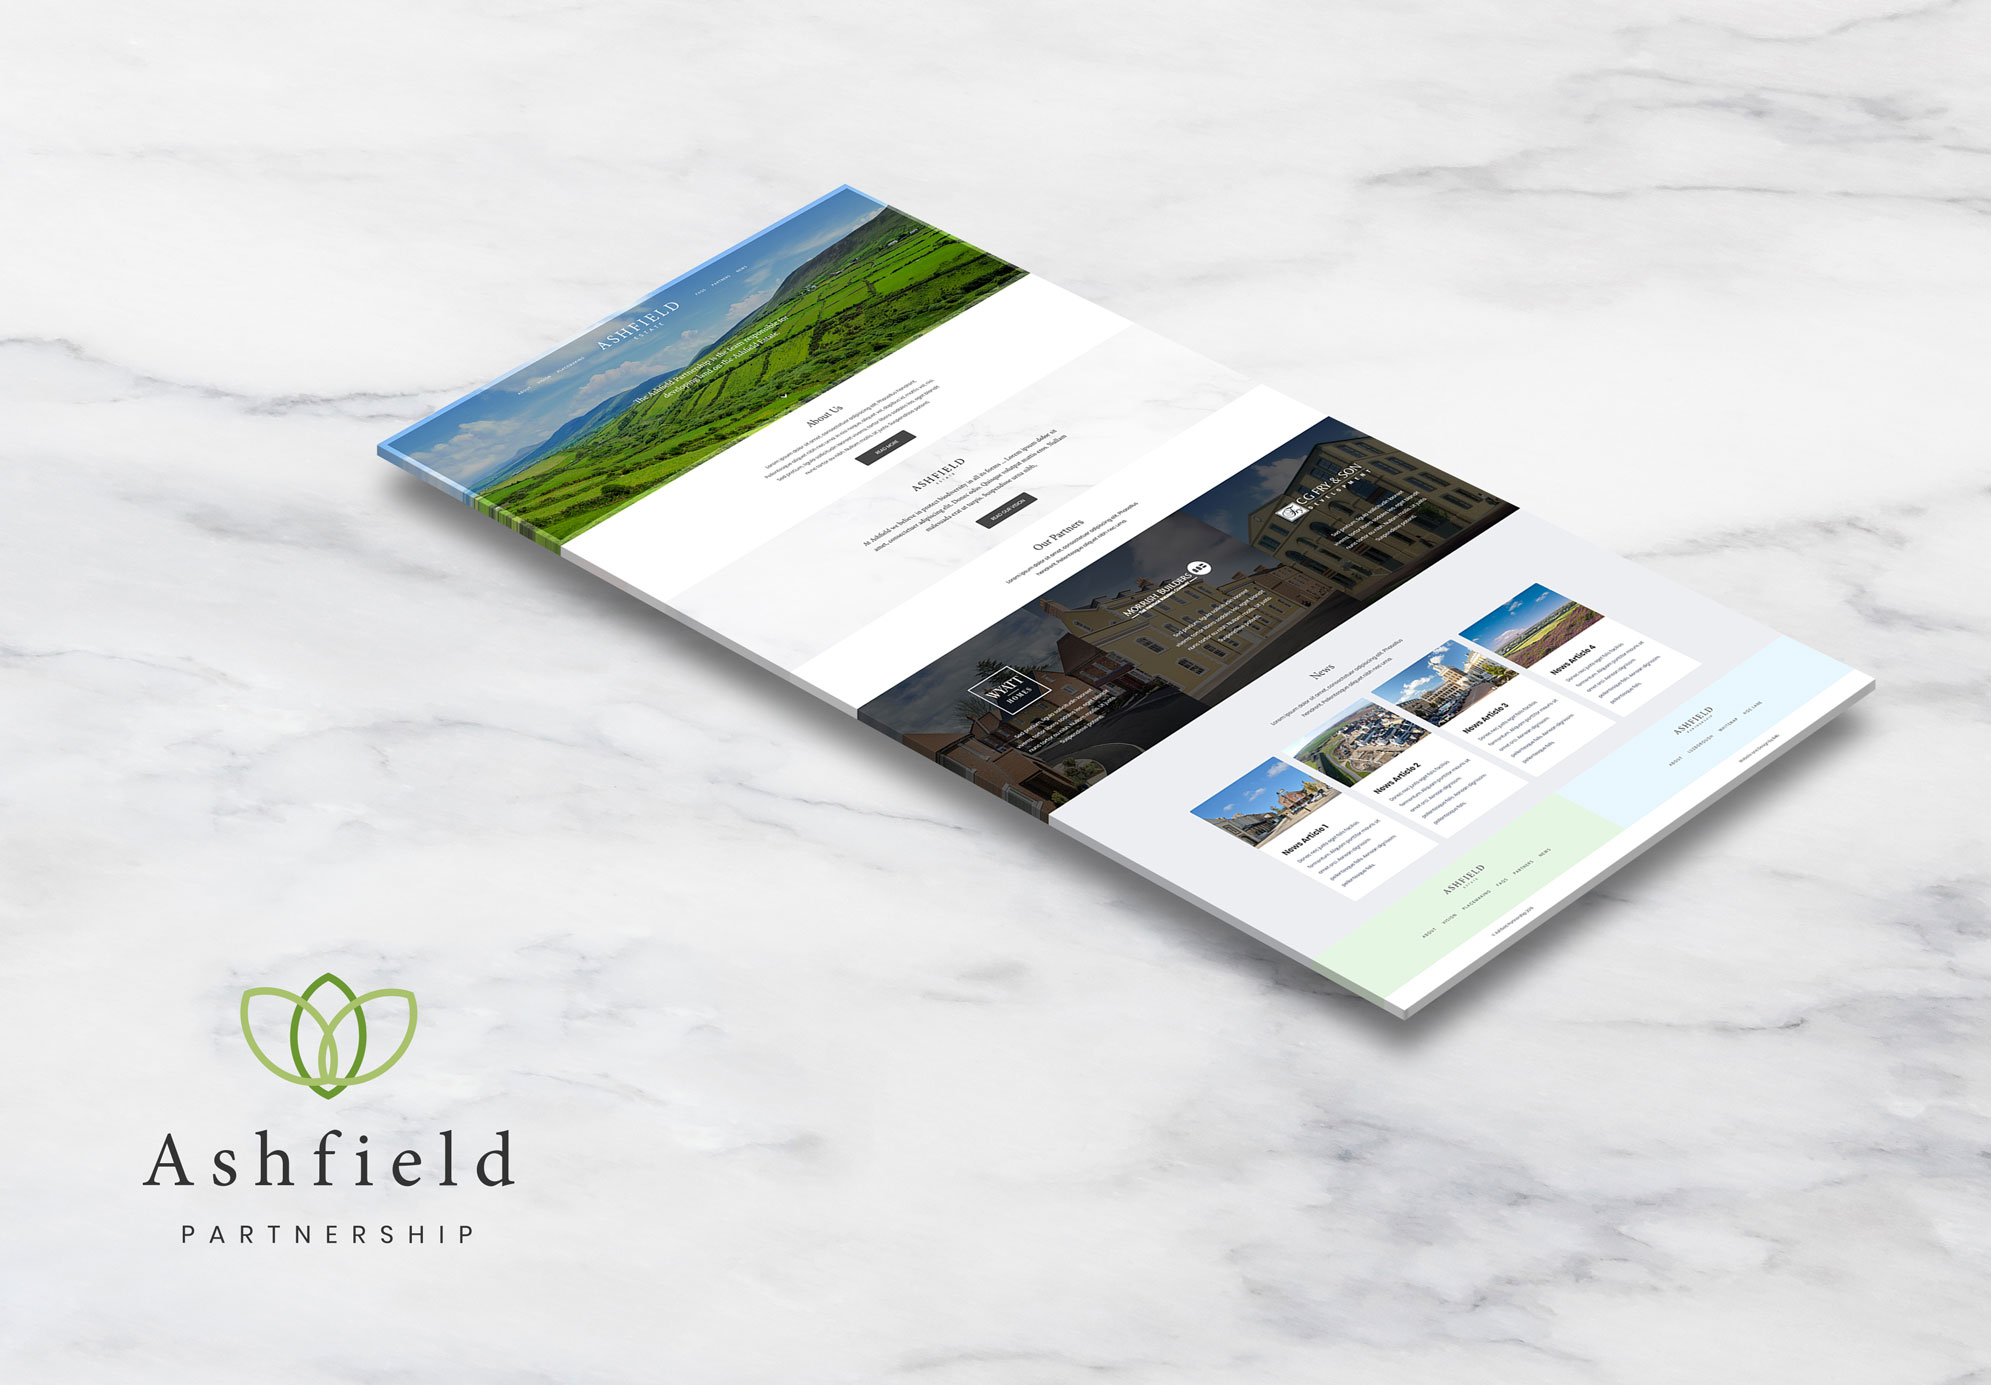 The Ashfield Partnership - Website Perspective Mockup